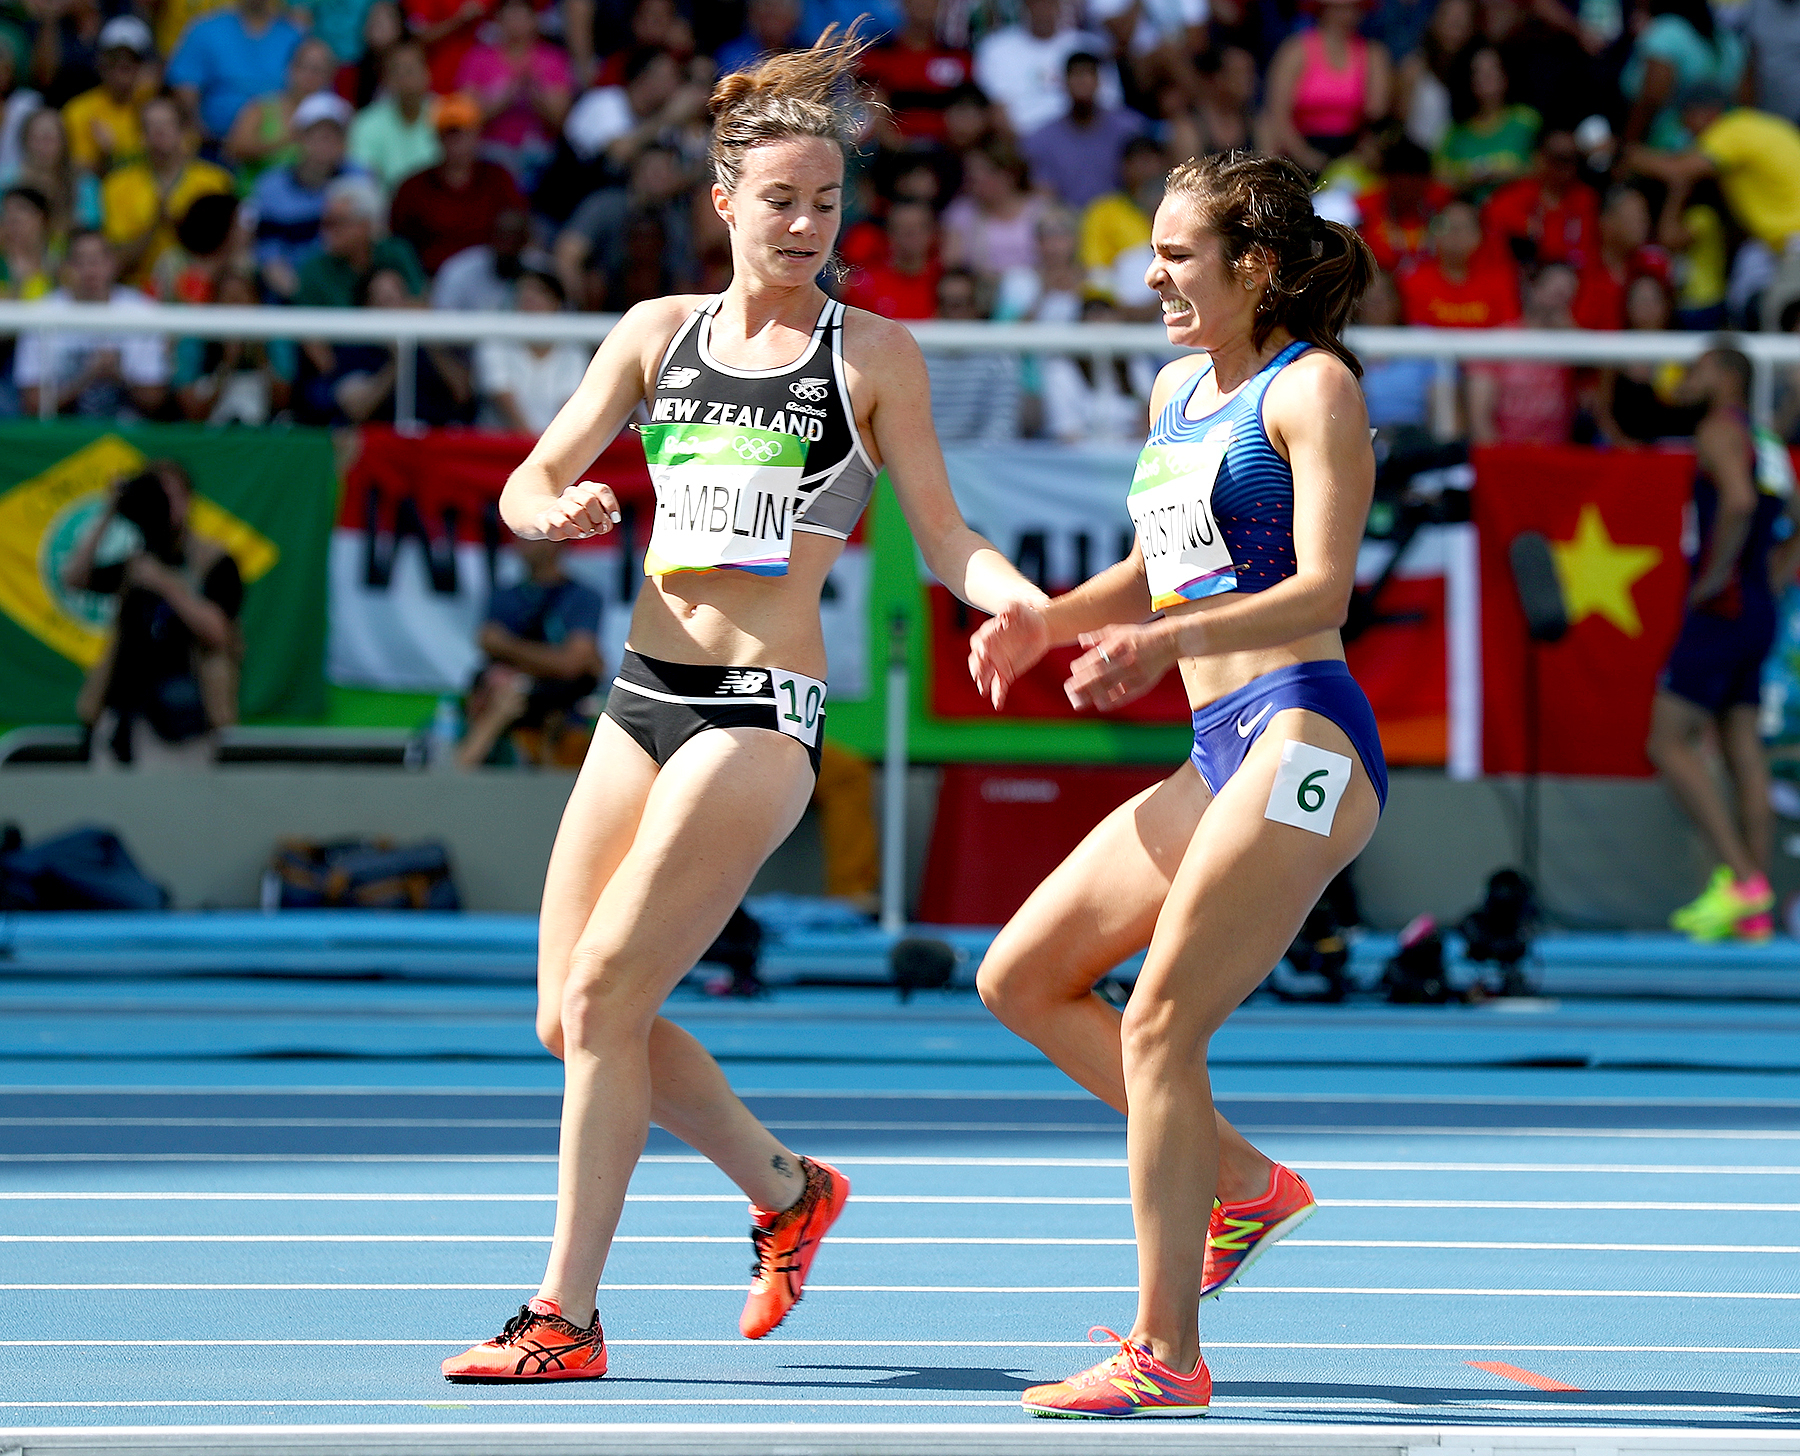 Abbey D'Agostino of the United States (R) is assisted by Nikki Hamblin of New Zealand after a collision during the Women's 5000m Round 1 - Heat 2 on Day 11 of the Rio 2016 Olympic Games at the Olympic Stadium on August 16, 2016 in Rio de Janeiro, Brazil.